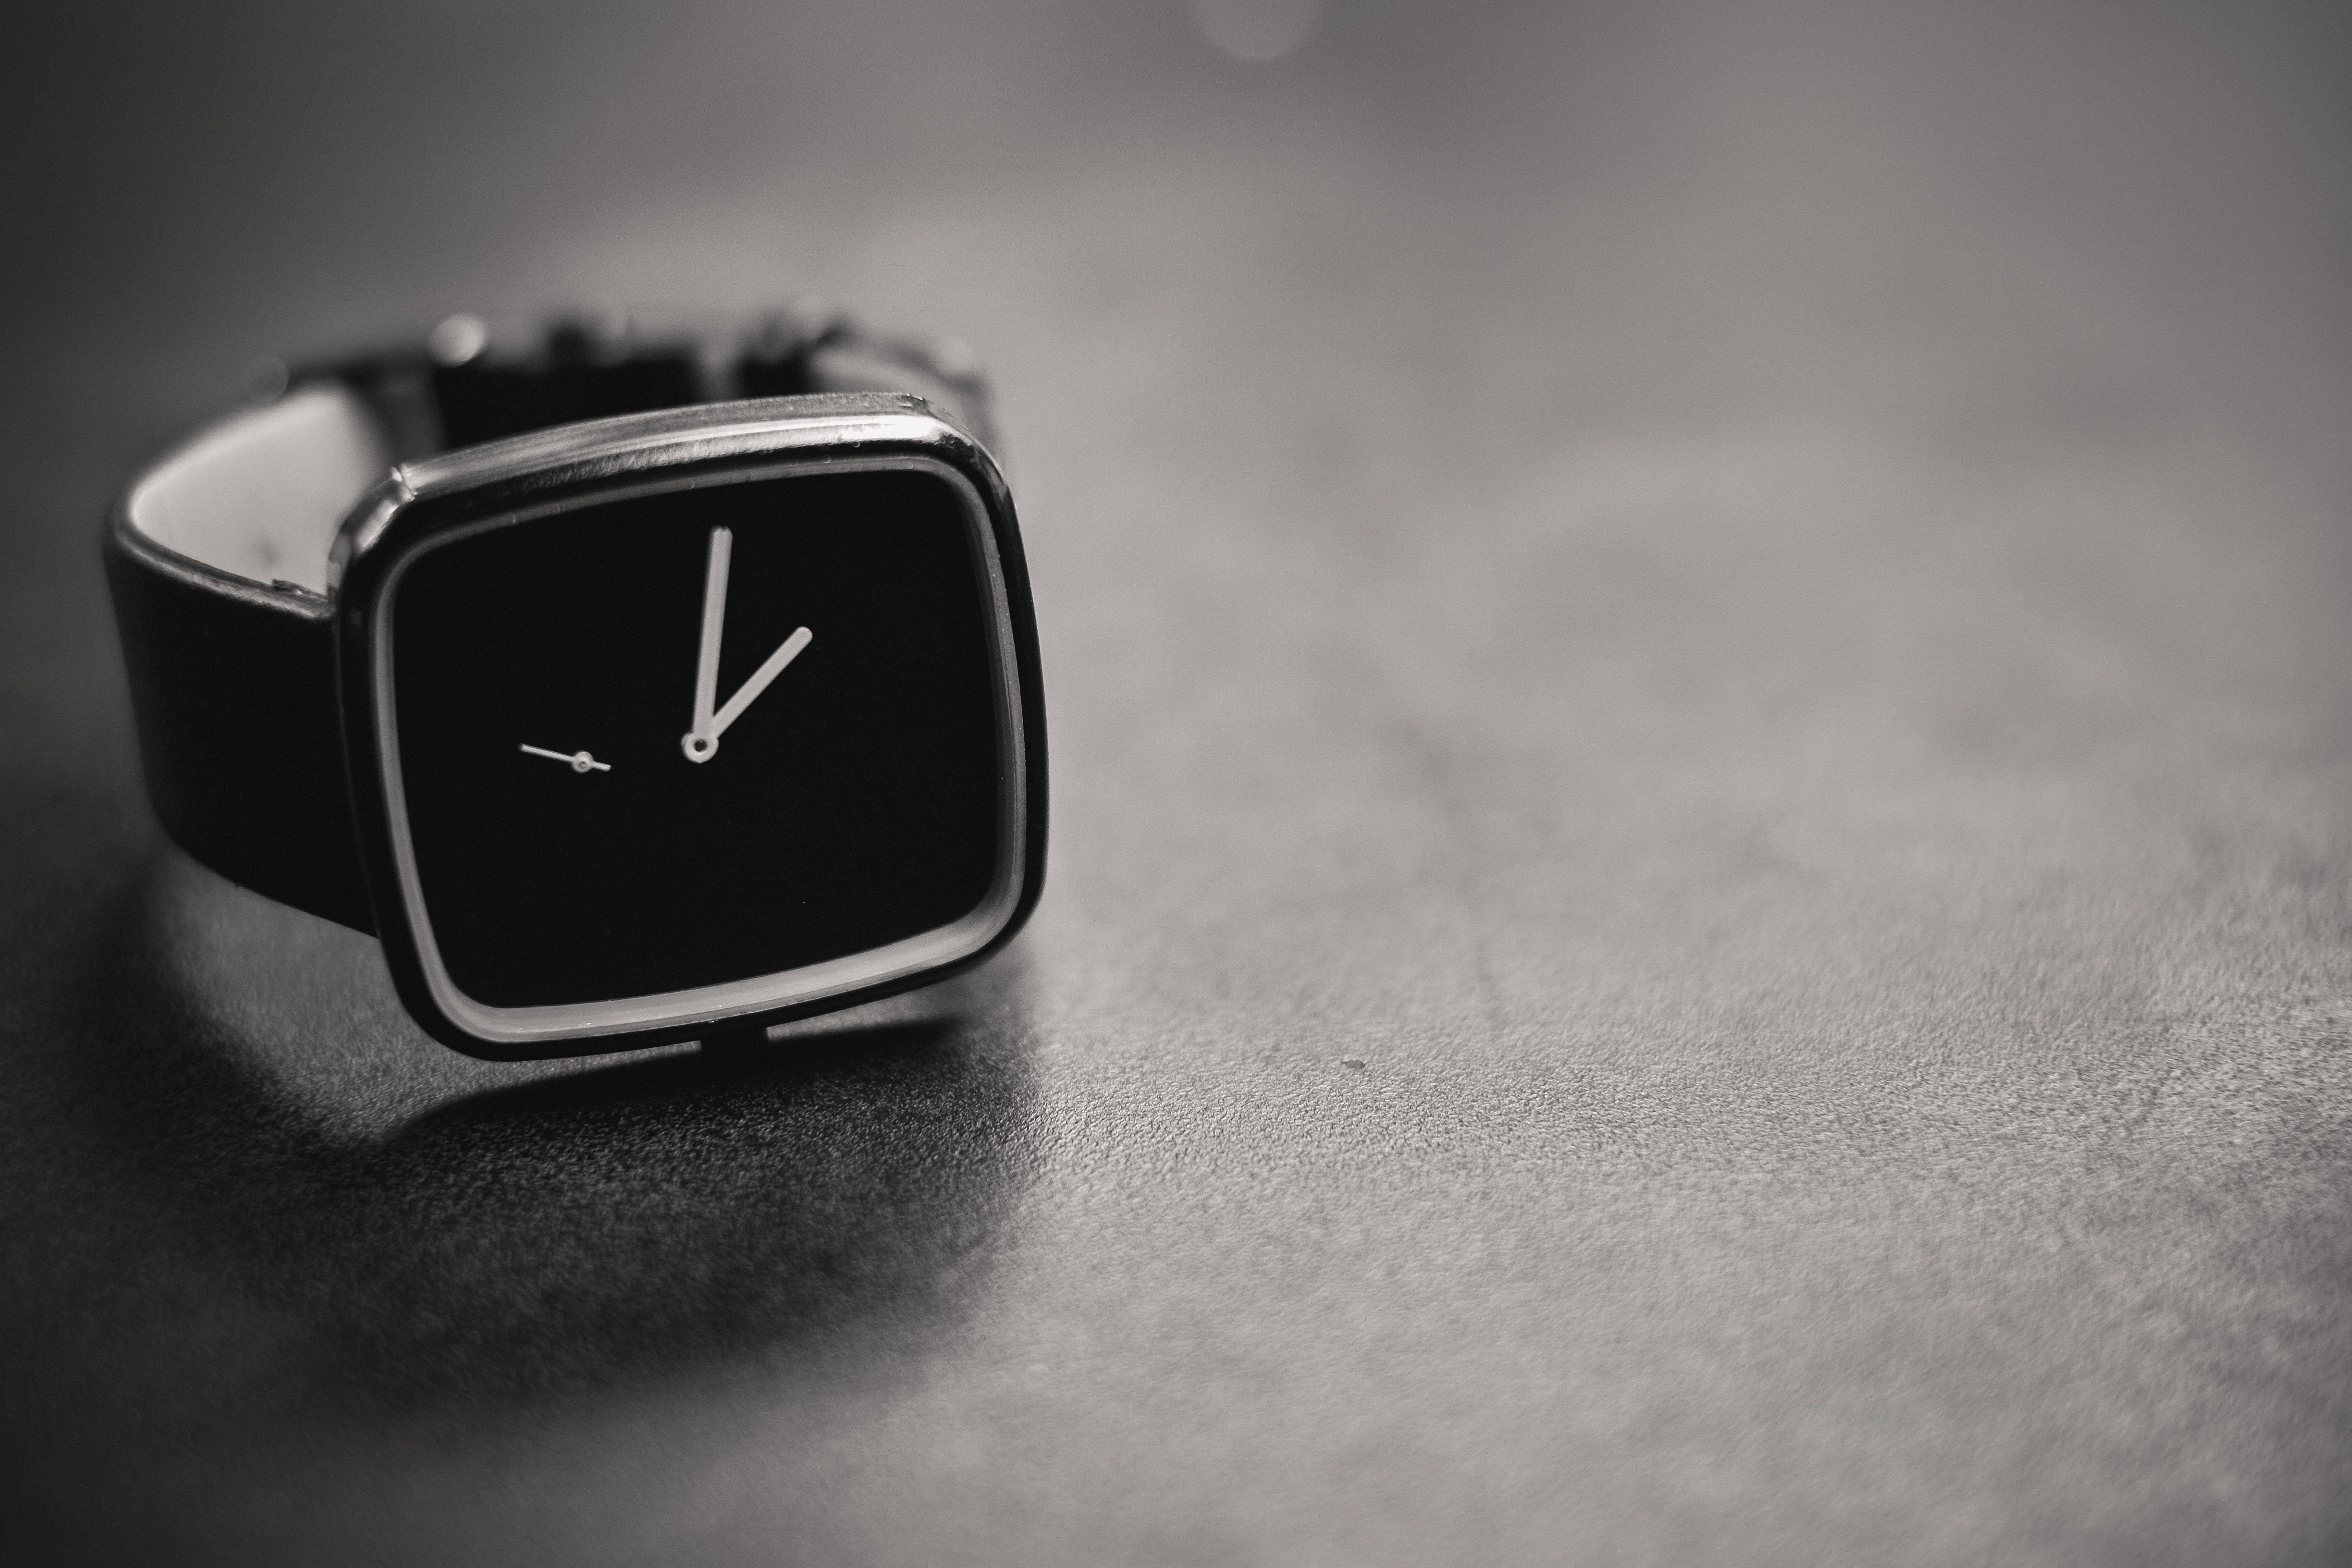 black and silver-colored analog watch showing 5:1